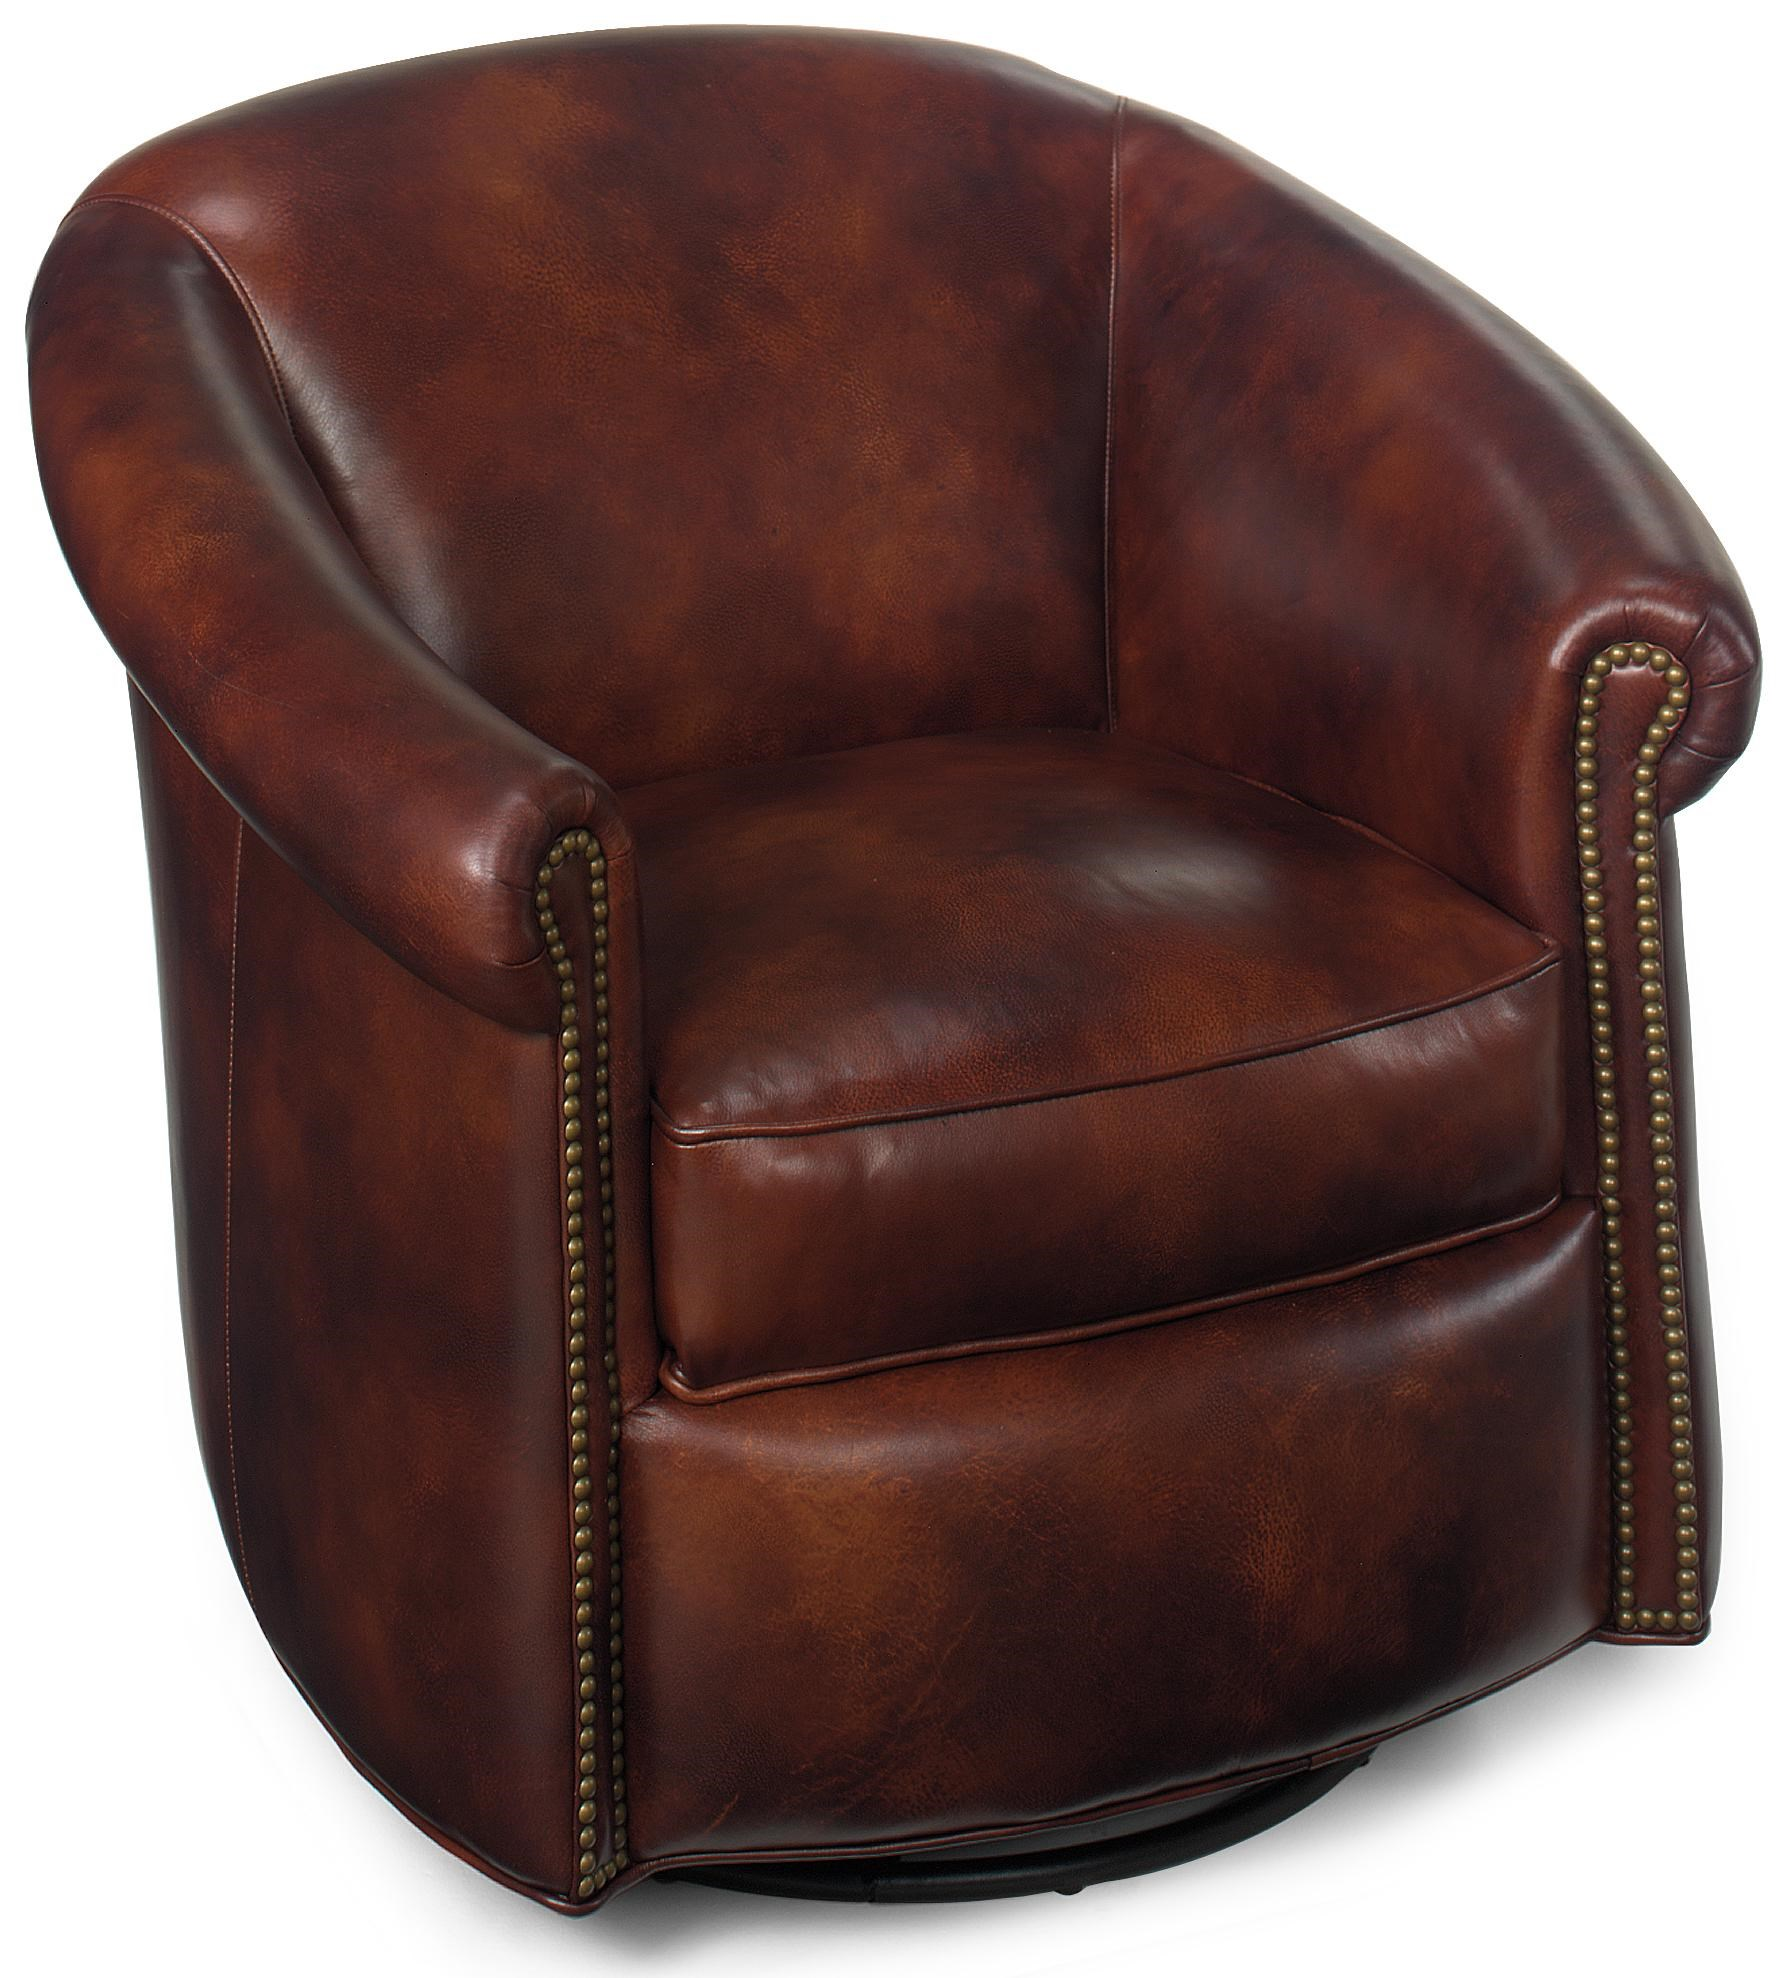 Tub Chairs Bradington Young Swivel Tub Chairs 340 25sw Marietta Traditional